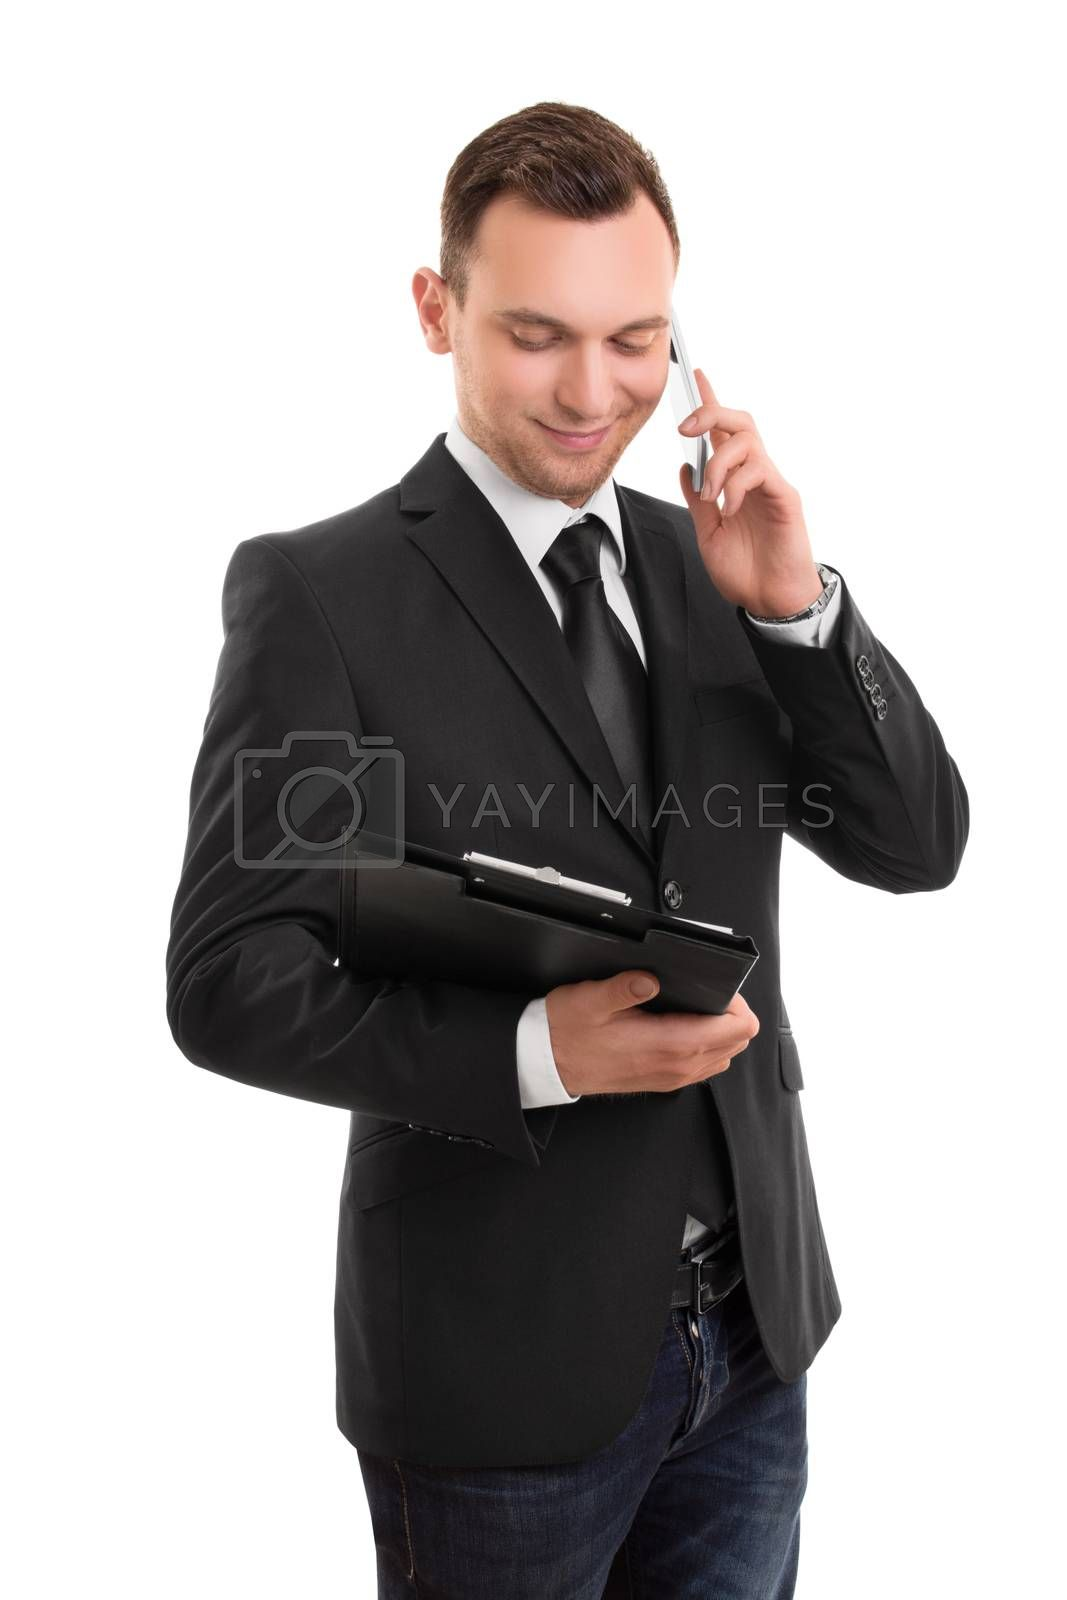 Portrait of a young businessman, holding a notepad, talking on a phone isolated on white background.